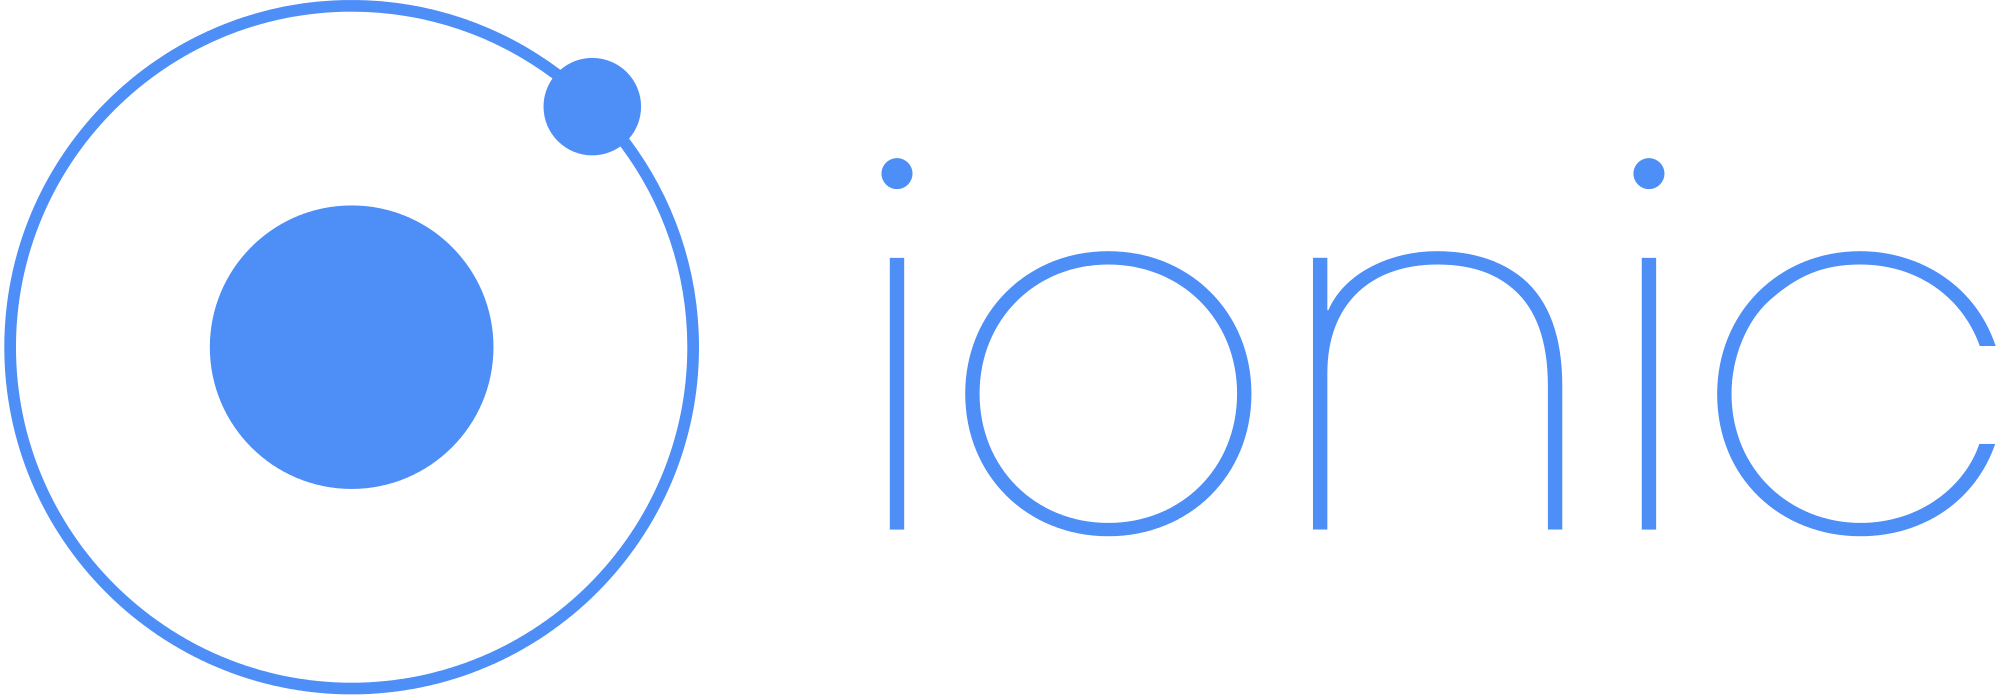 Optimize Ionic Mobile App Performance | Clarity